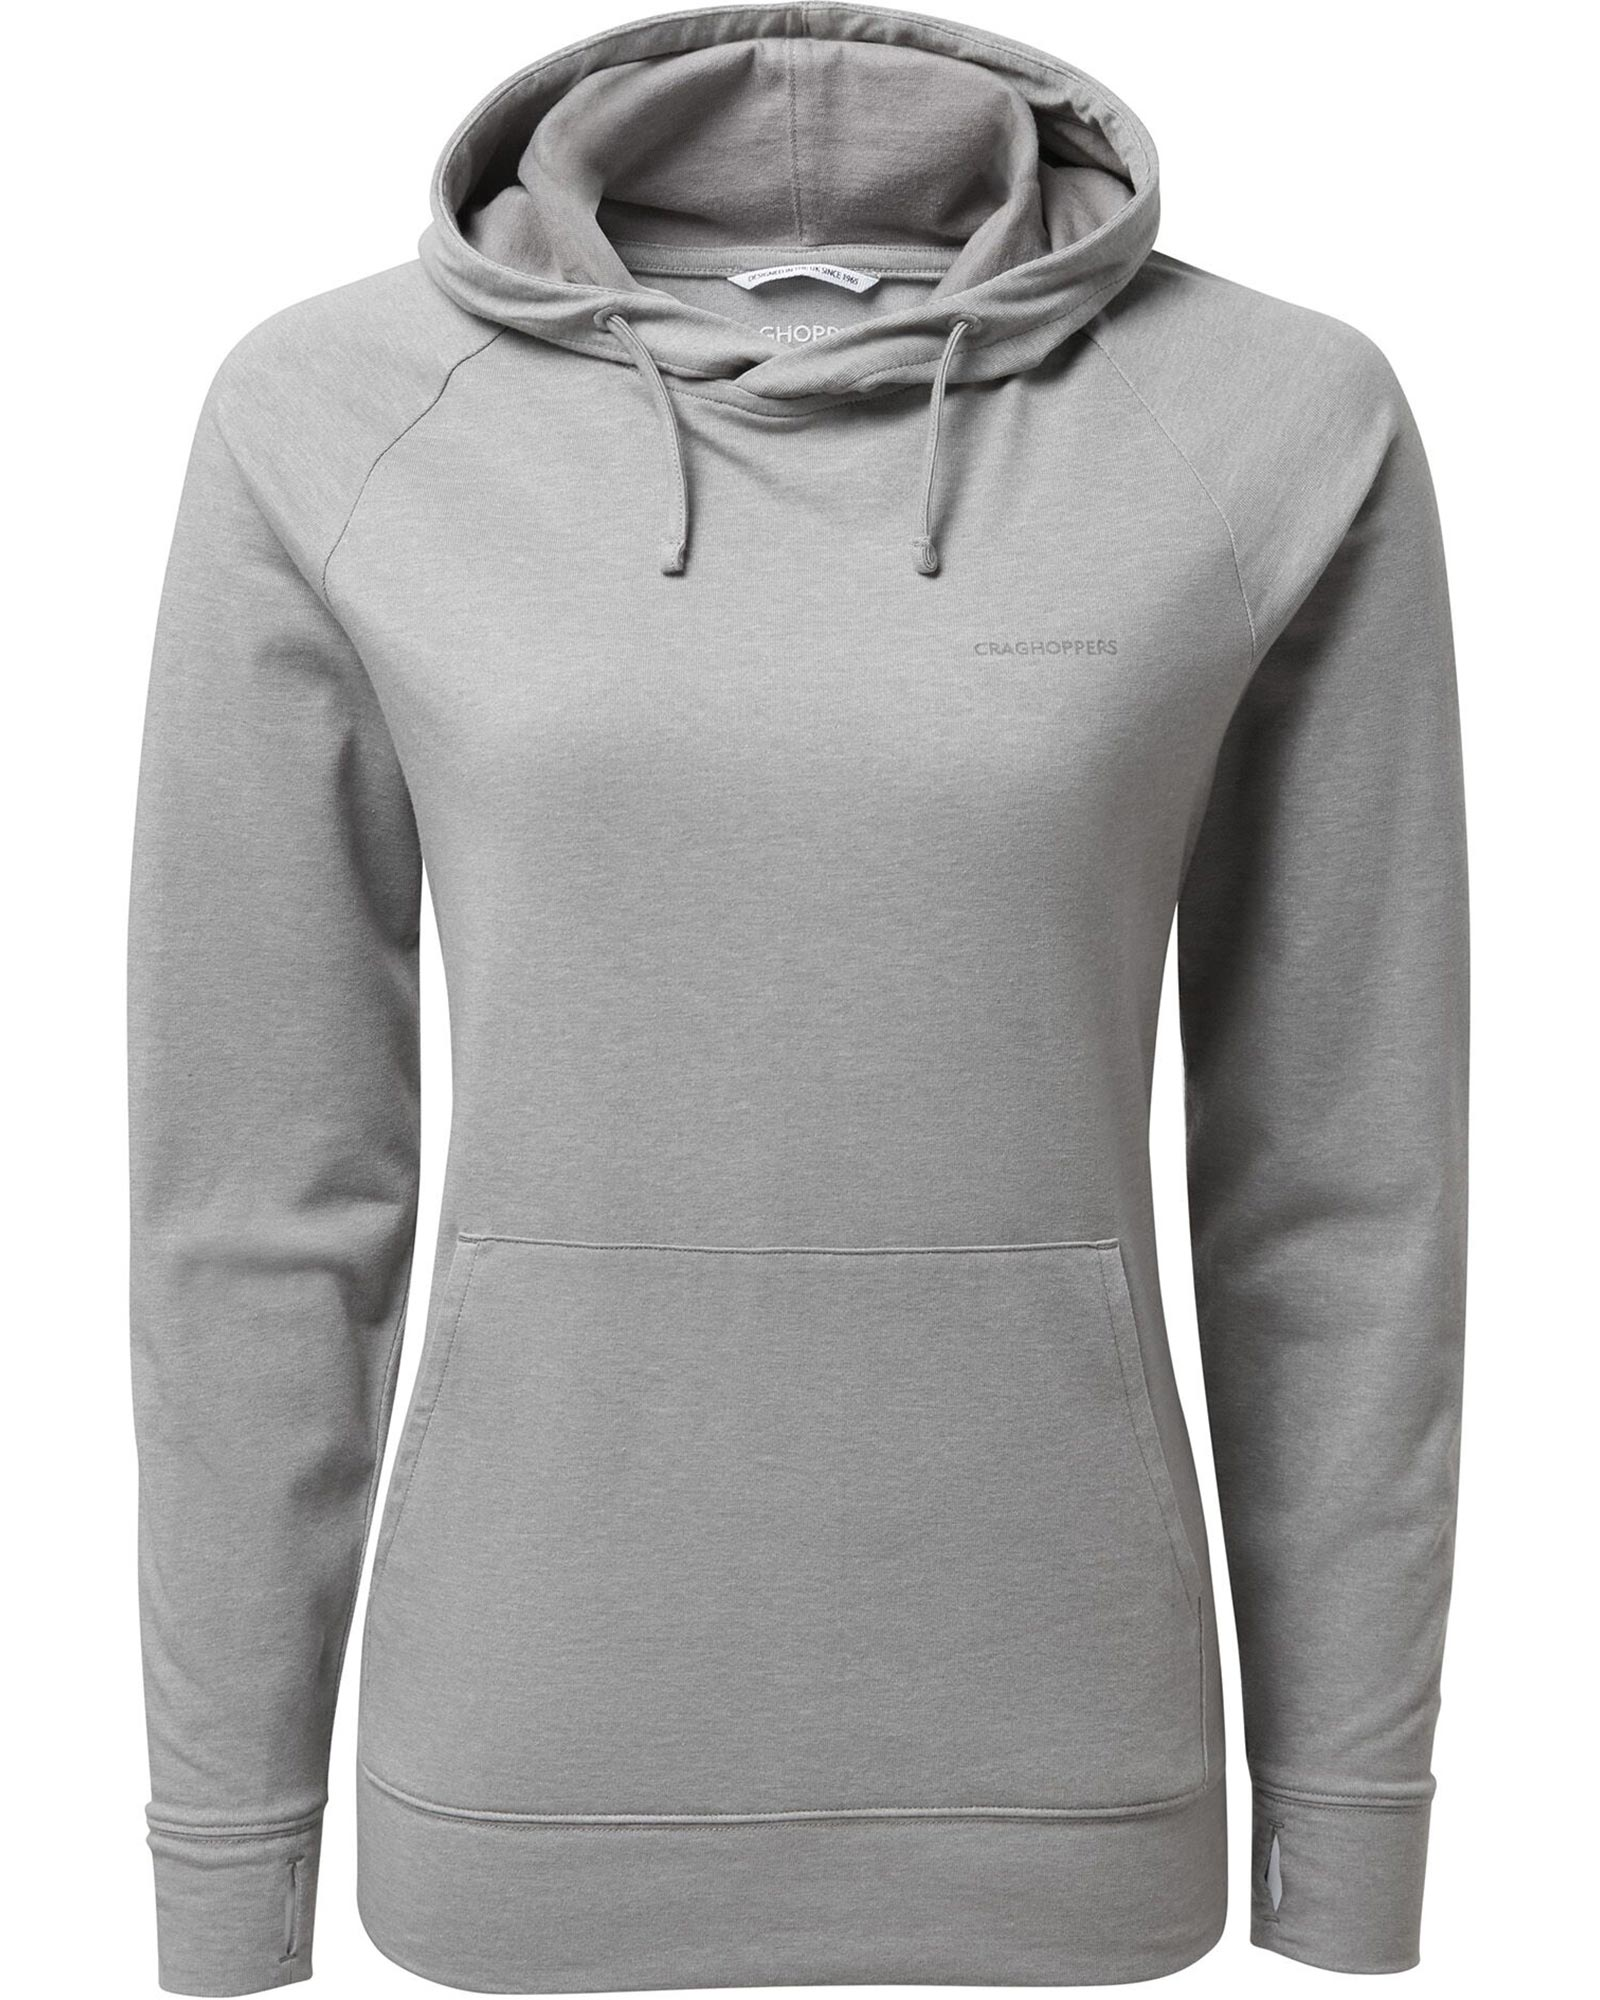 Craghoppers Women's NosiLife Alandra Hooded Top 0